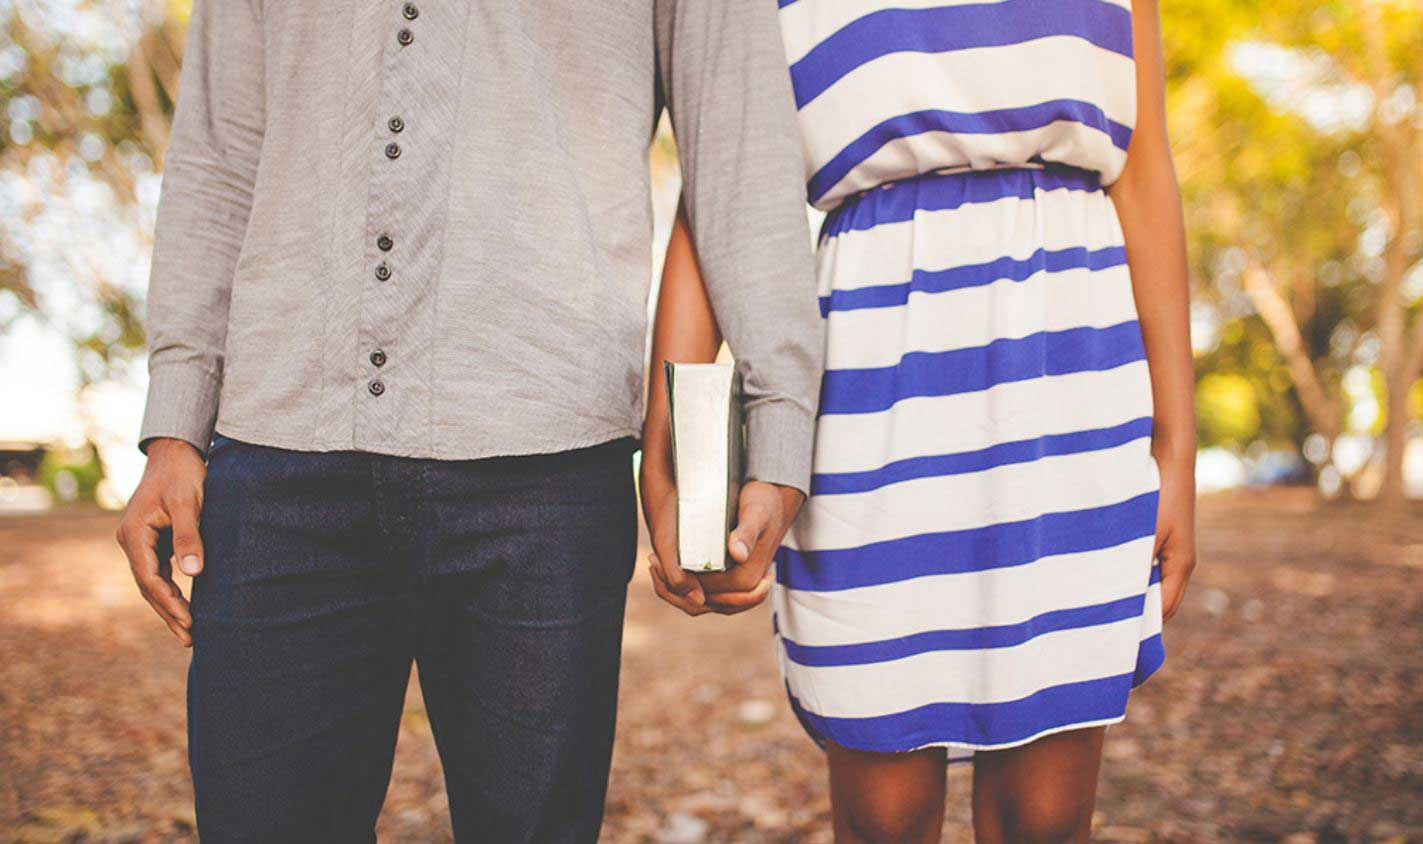 Amazing Lessons from the Bible on romance